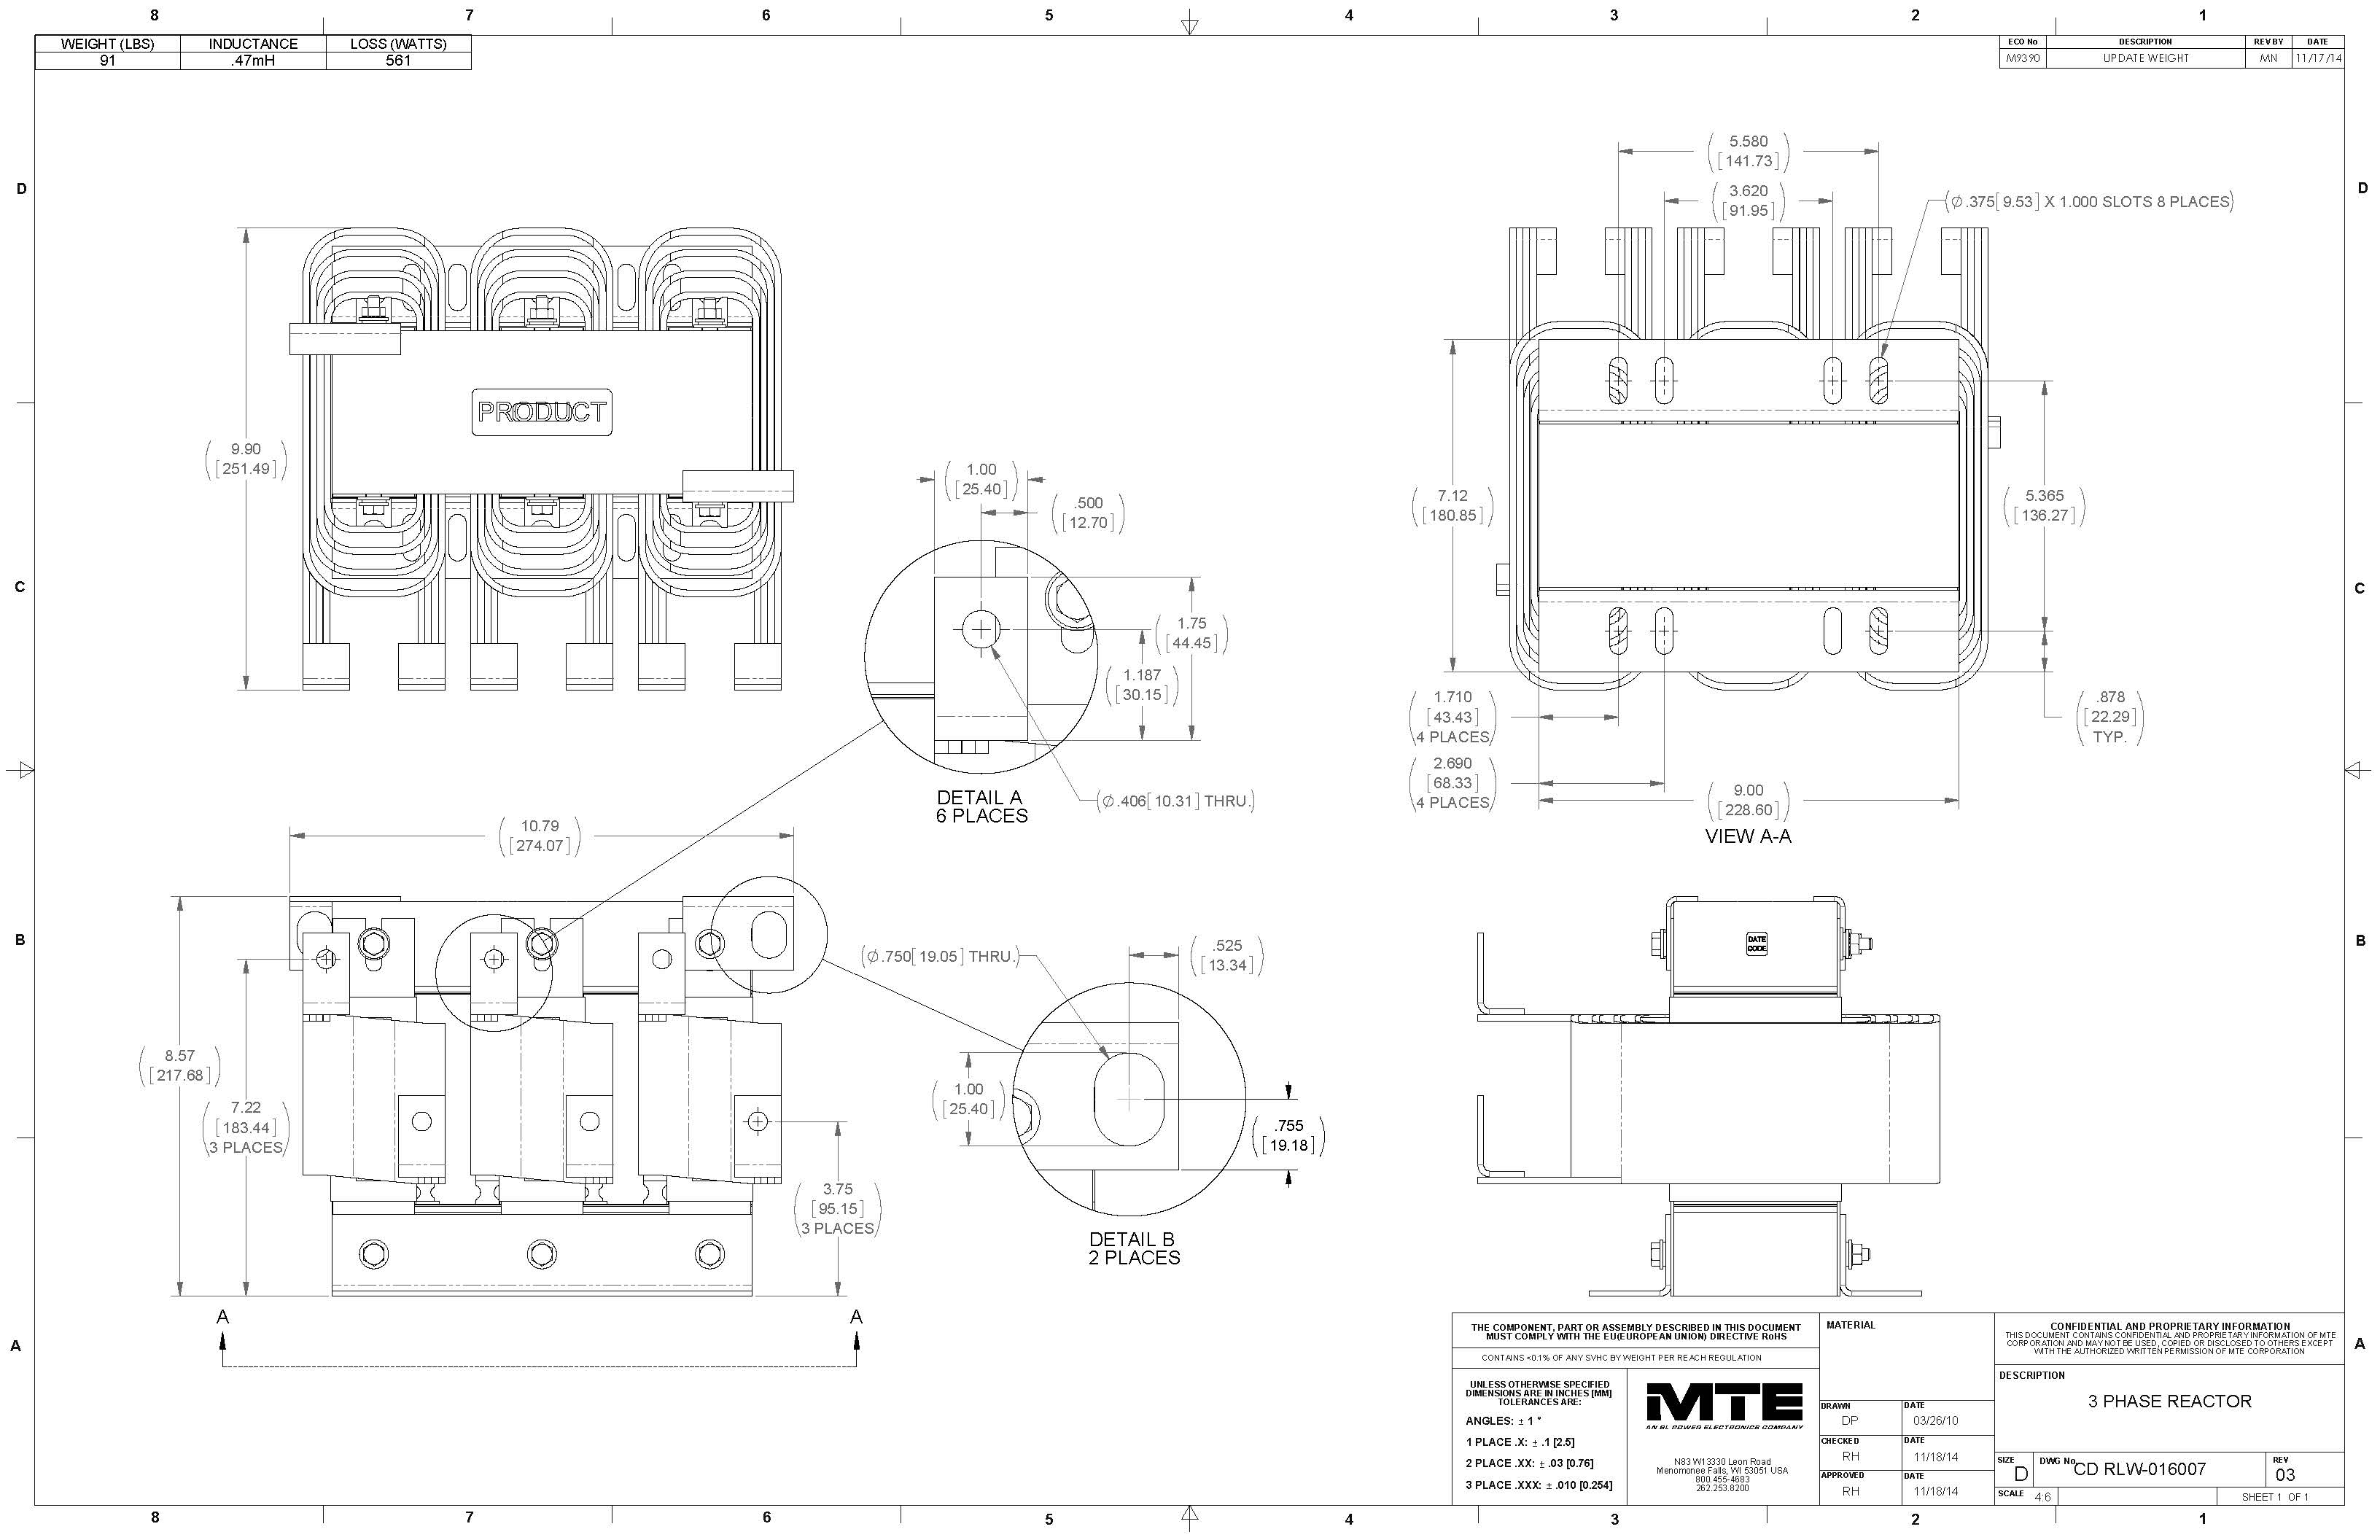 Image of an MTE Reactor RLW-016007